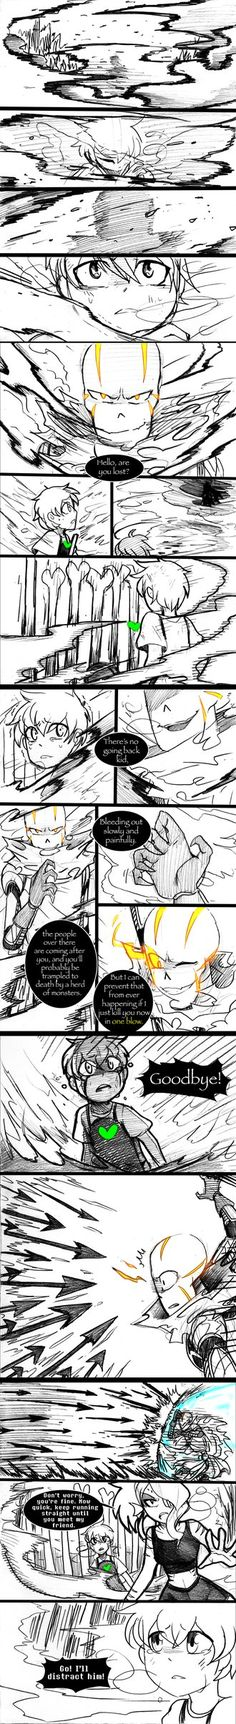 Anamnesis Part 4 - 31-35 by GolzyBlazey.deviantart.com on @DeviantArt